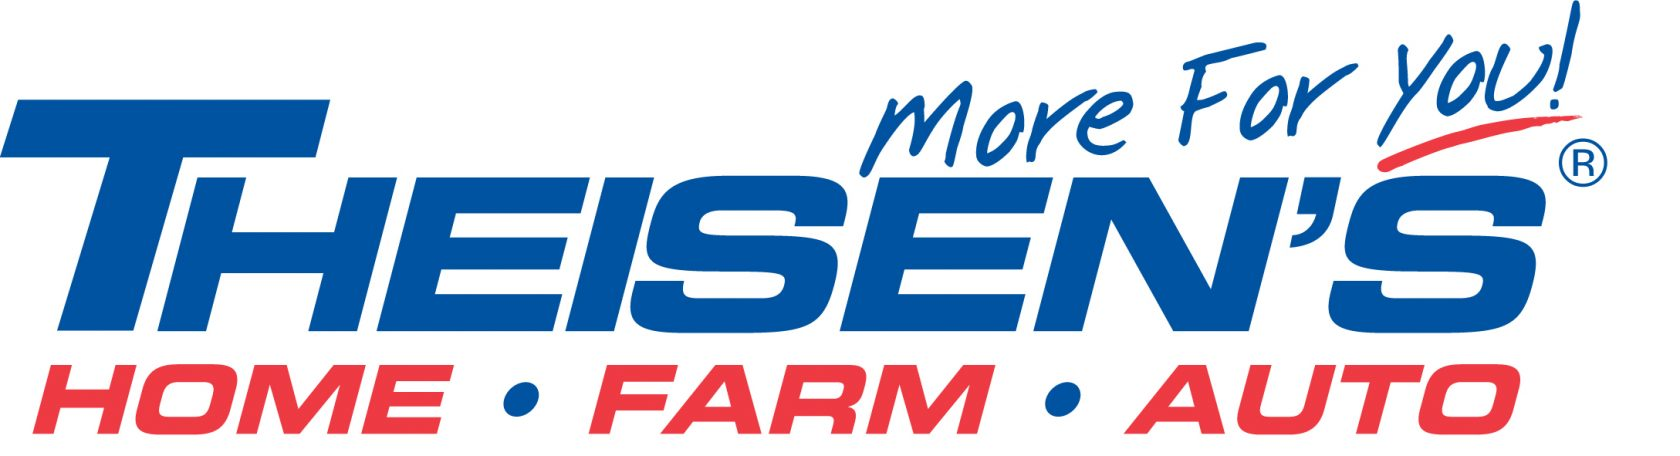 Theisen's More For You logo 2012 COLOR